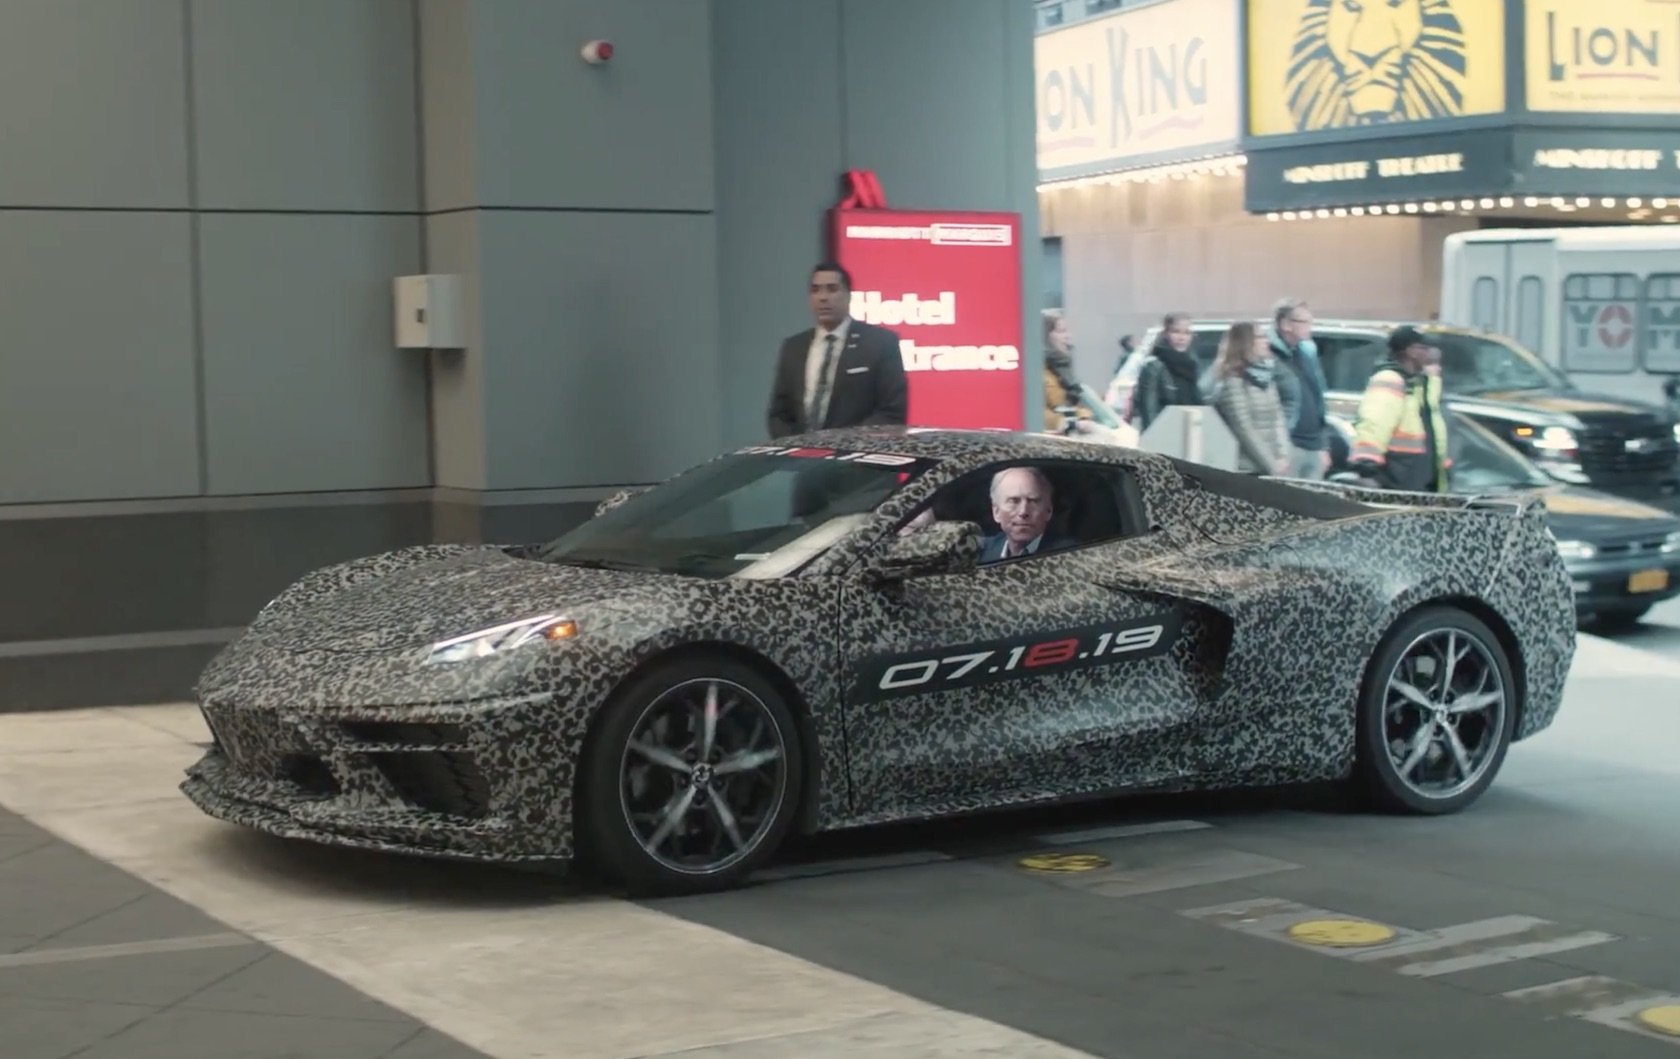 The 2020 Corvette C8 steering wheel gives me unexpected